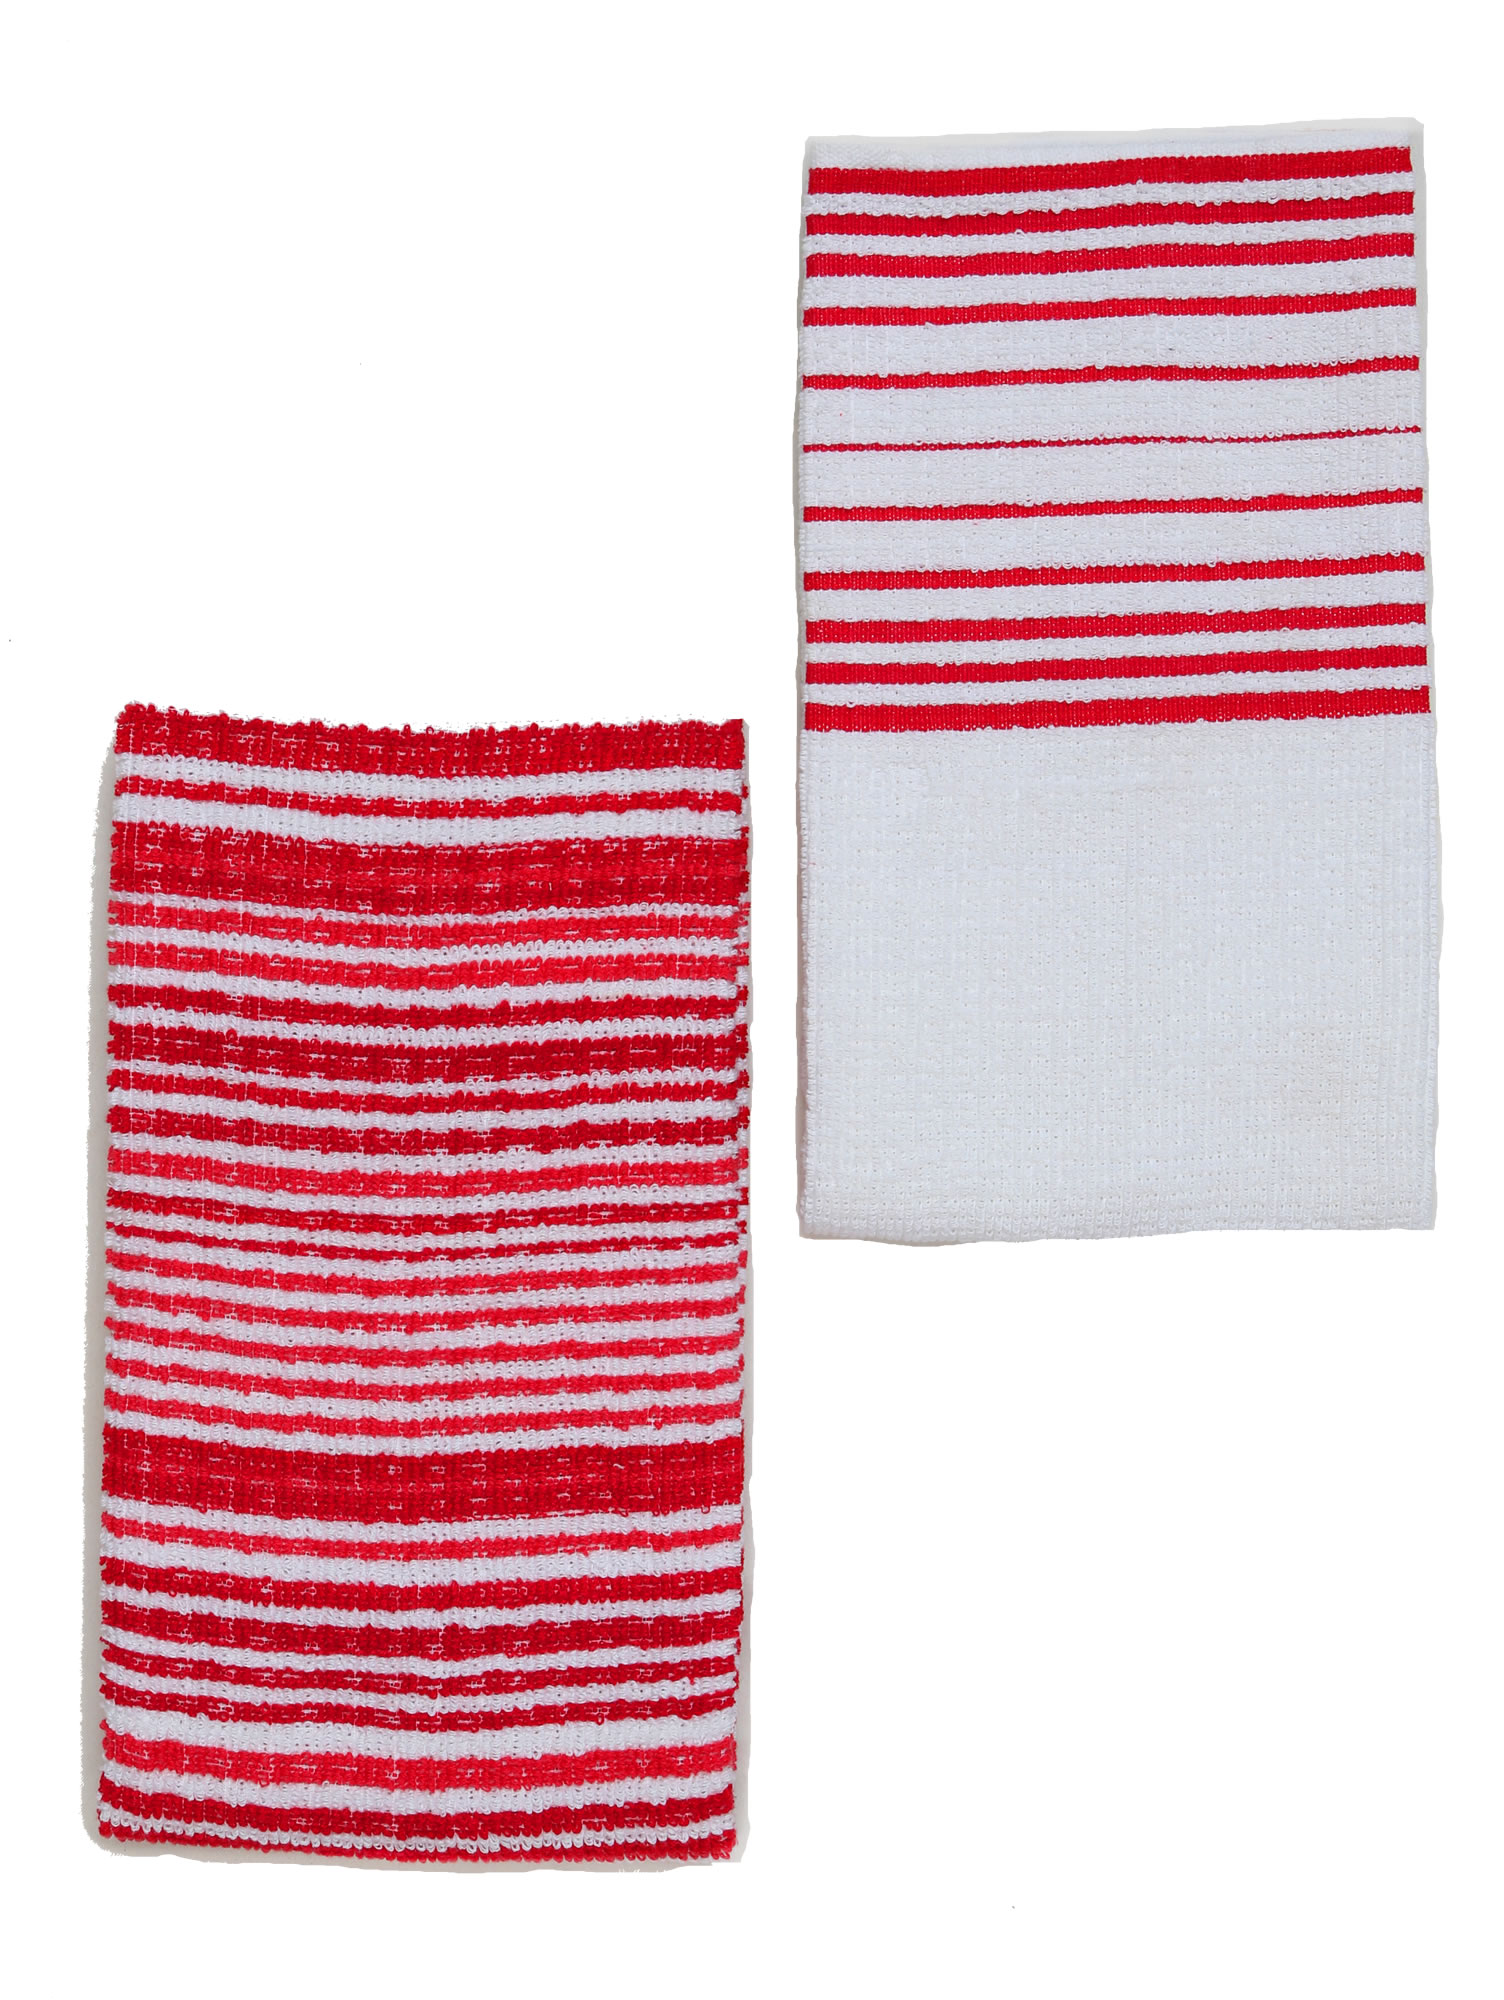 Kuku0027s Cuisine Kitchen Towels (Set Of Two) Stripe Pattern U2013 Red U0026 White